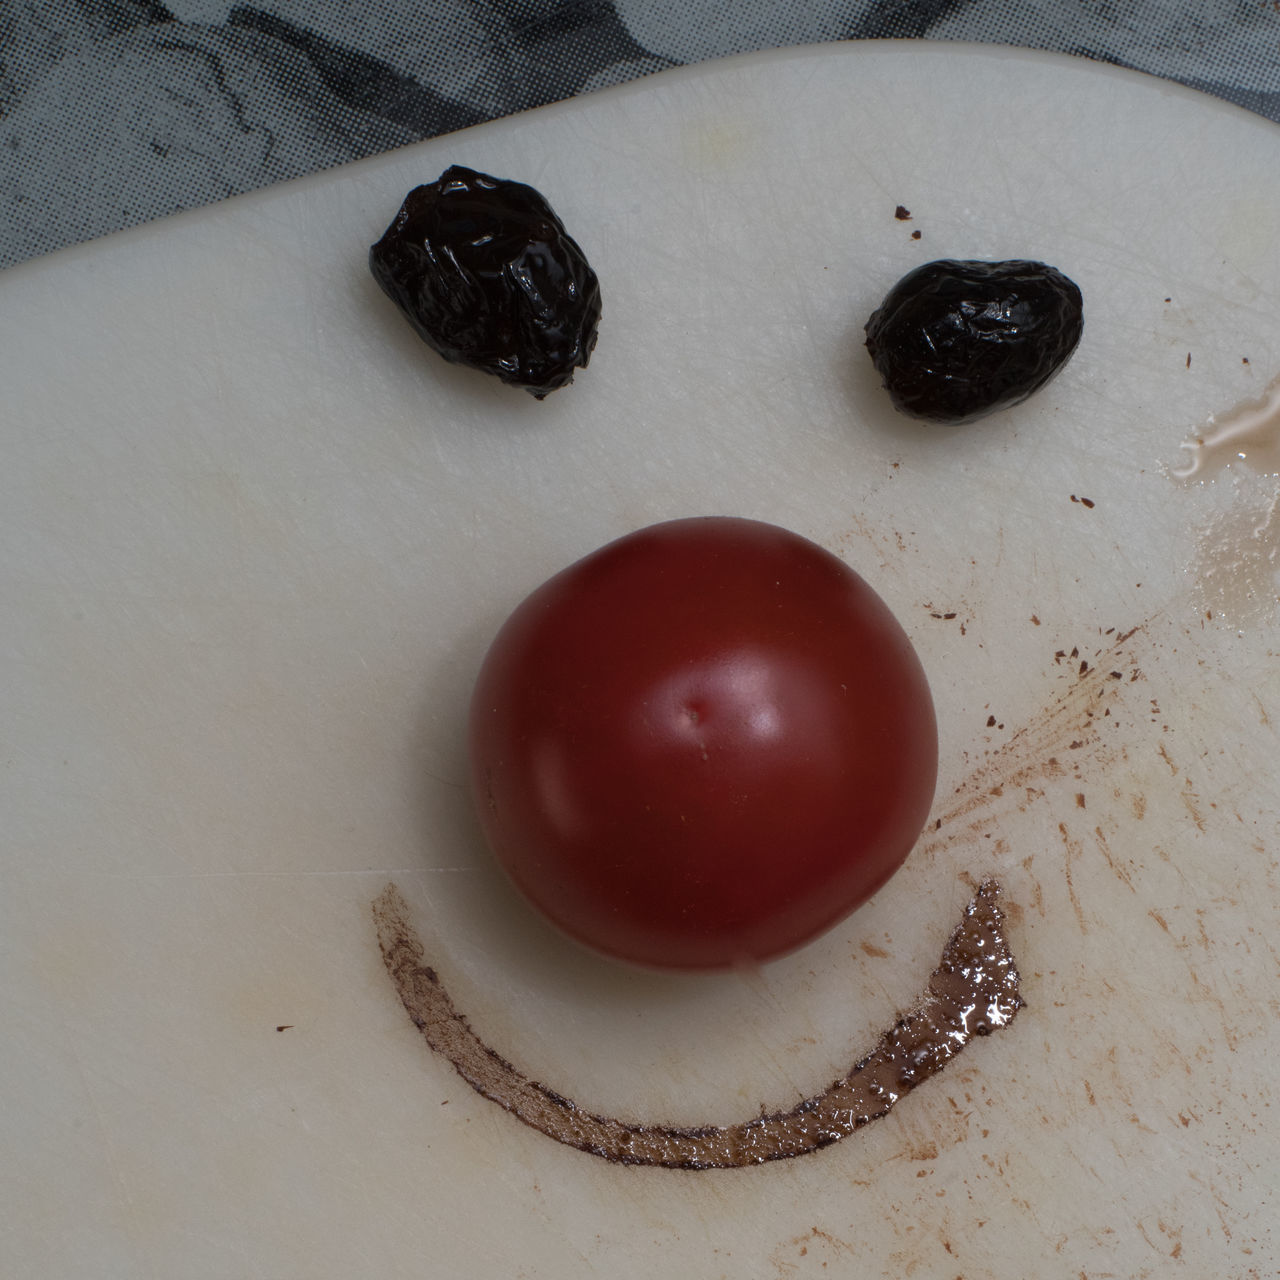 Olive eyes make you look better Breakfast Close-up Day Directly Above Flash Photography Food Food And Drink Freshness Fruit Healthy Eating High Angle View Indoors  Keep Smiling Kitchen Kitchen Art Morning No People Olives Optimistic Plate Studio Shot Table Tomato Vinegar